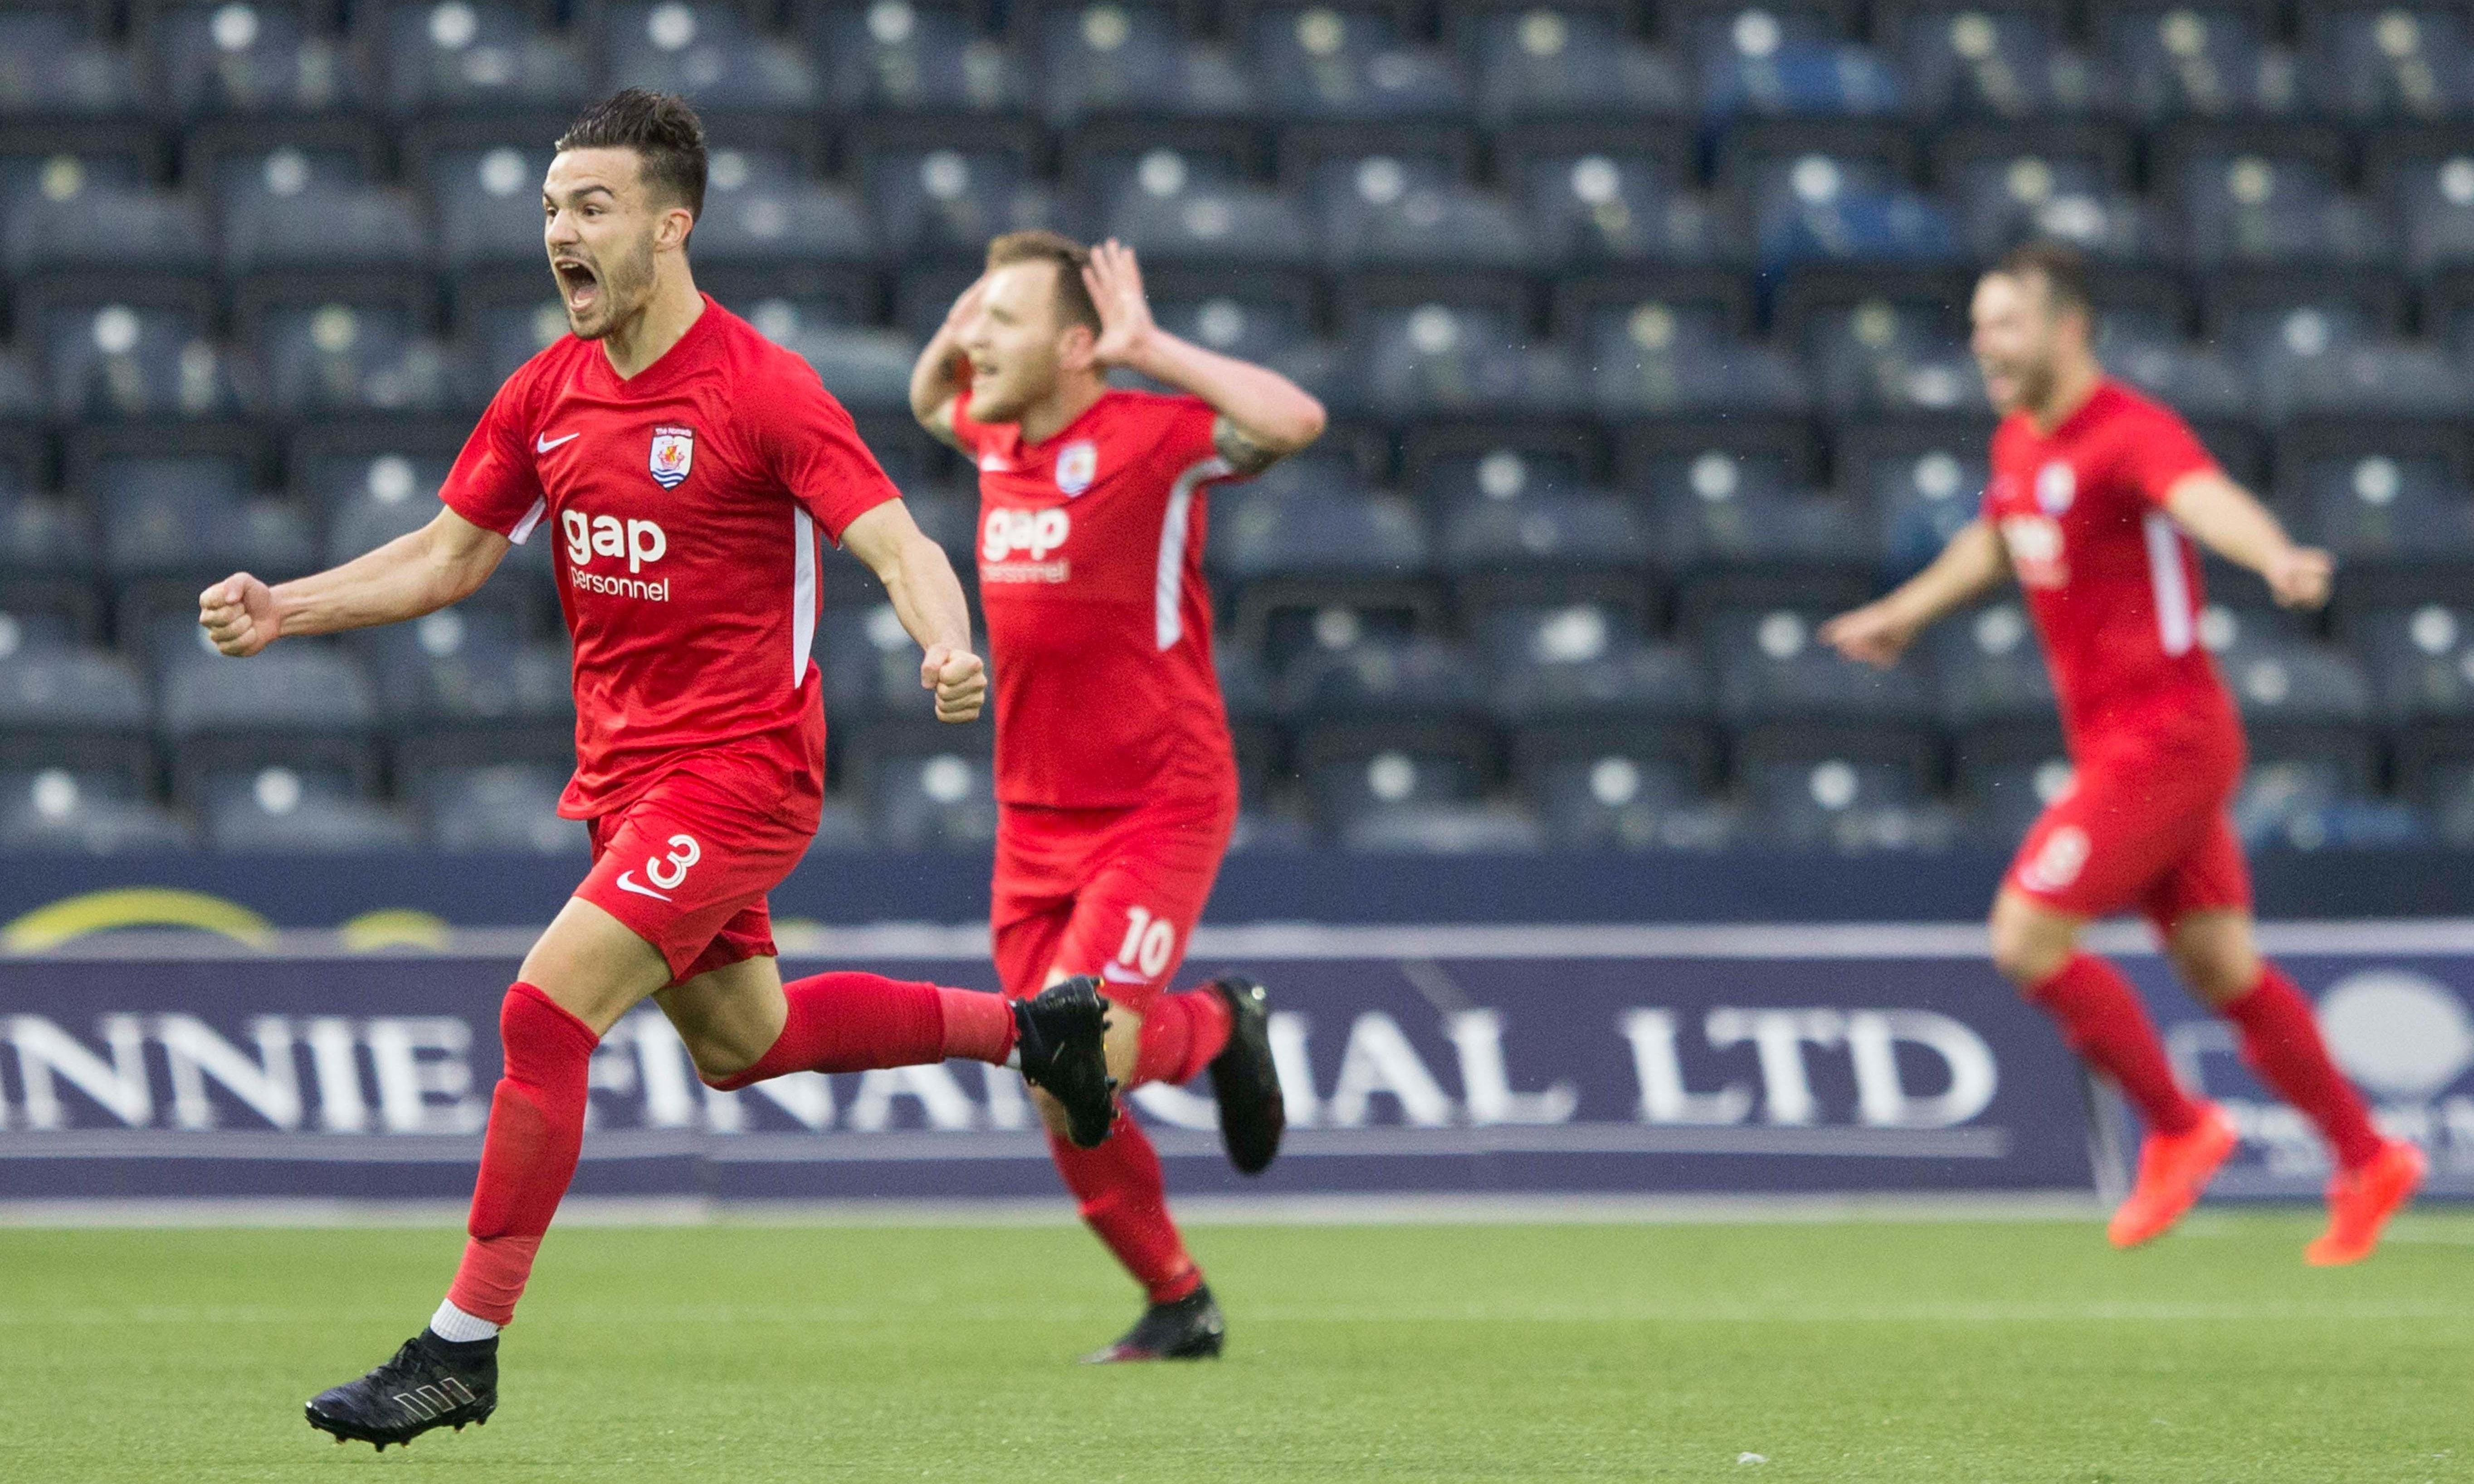 Kilmarnock dumped out of Europa League by Connah's Quay Nomads